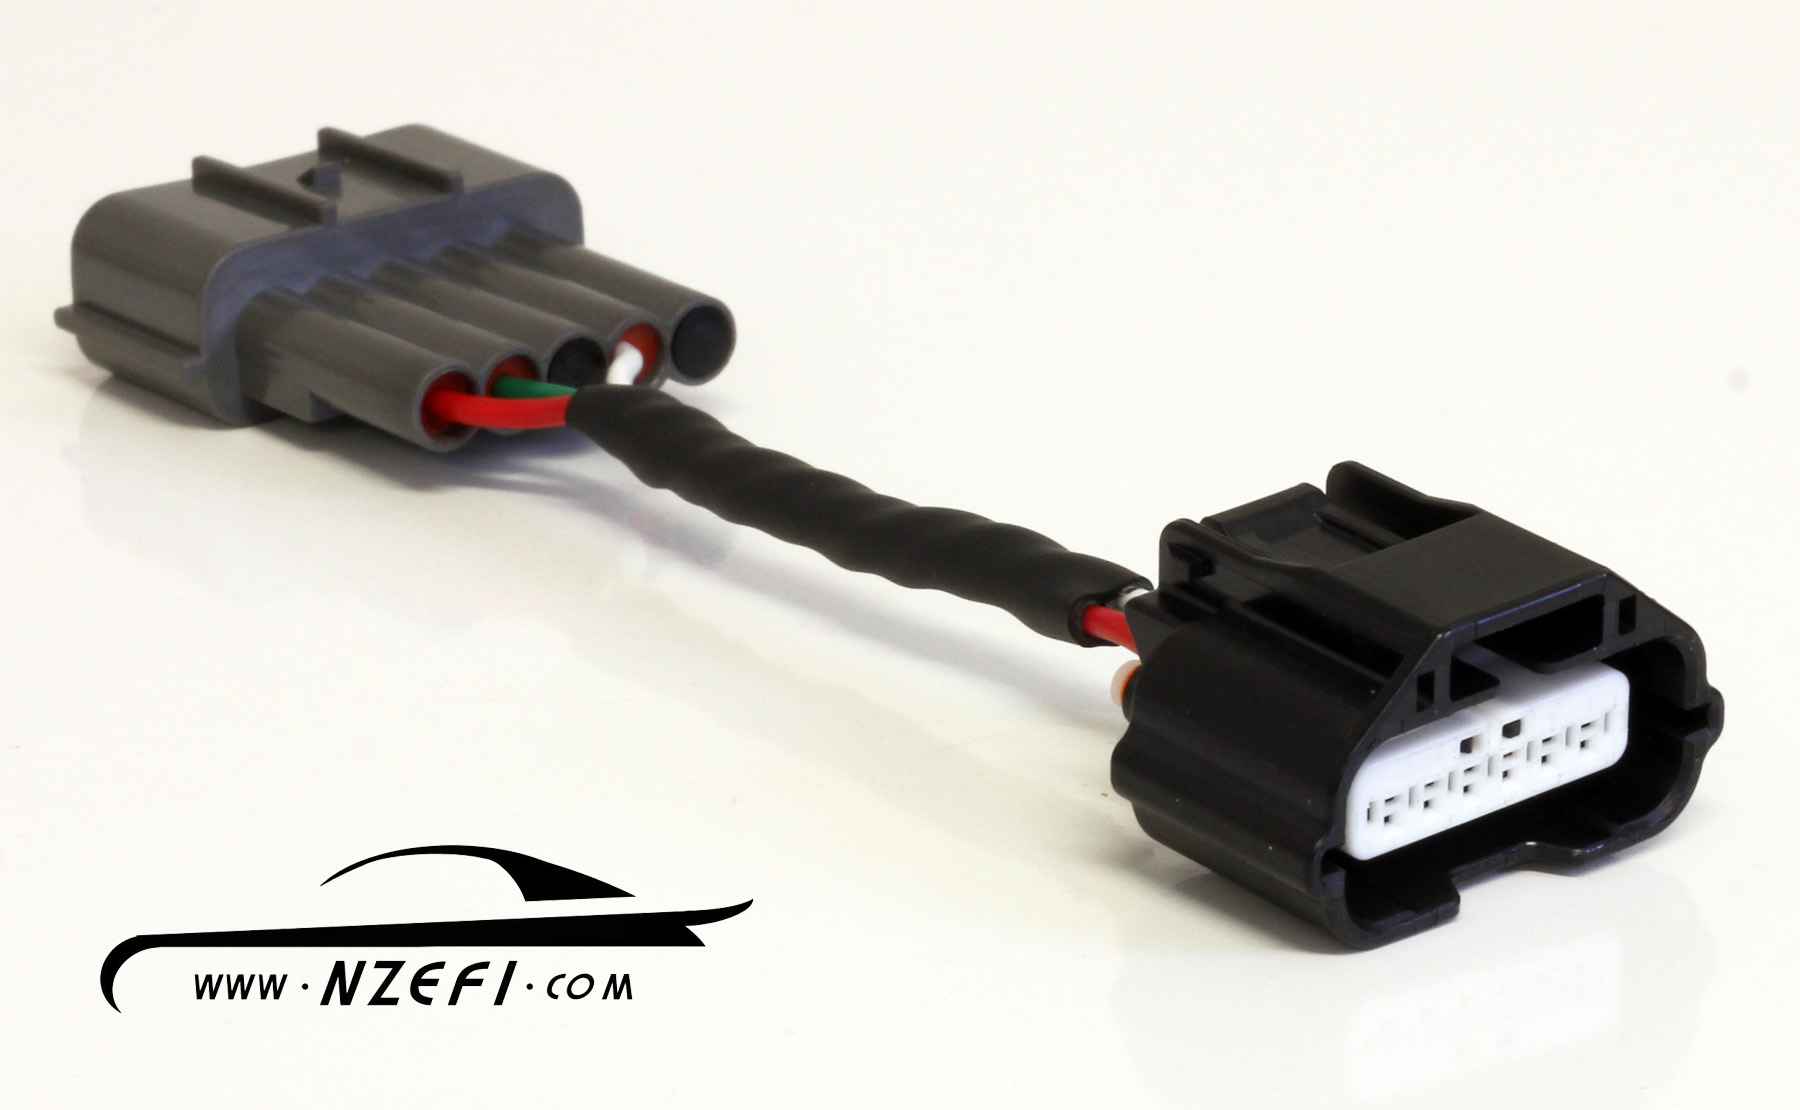 Afm Adapter Harness   Rb25 S1    Rb26 Upgrading To